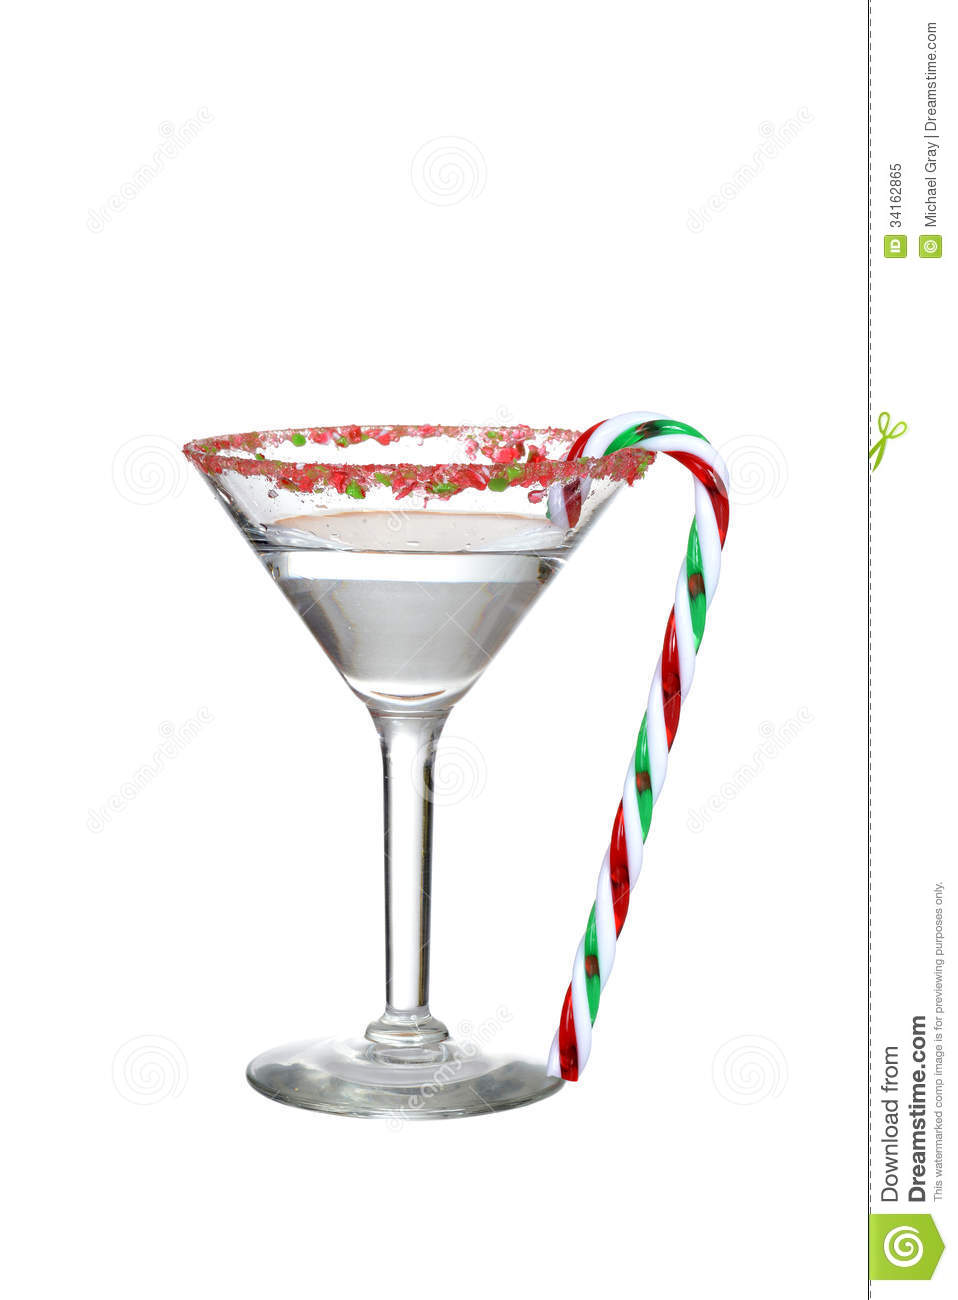 Clear Candy Cane Martini Royalty Free Stock Photo - Image: 34162865